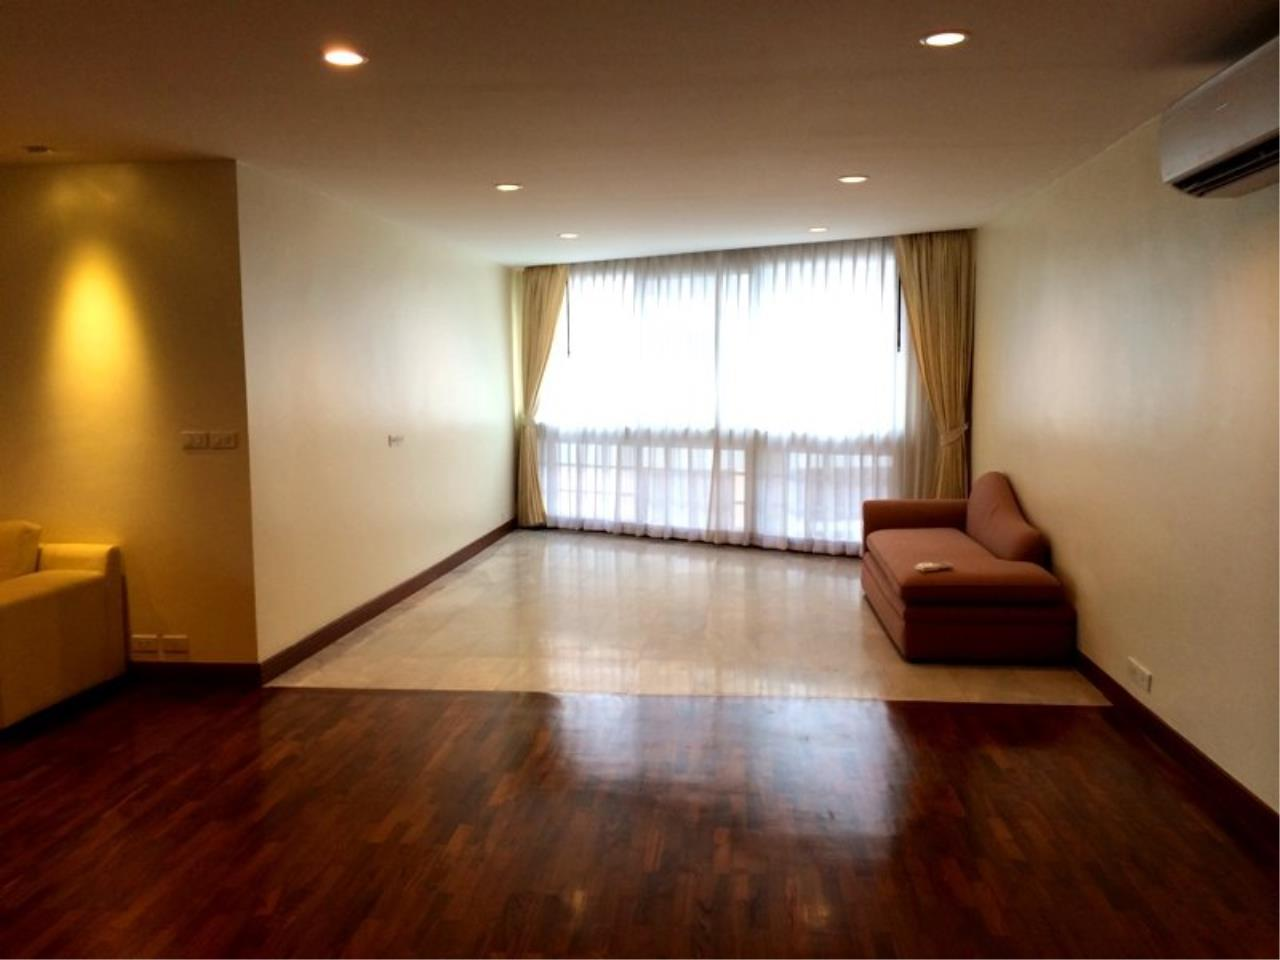 Piri Property Agency's Spacious 3 Bedrooms in the President Park Condominium for rent on high floor 2